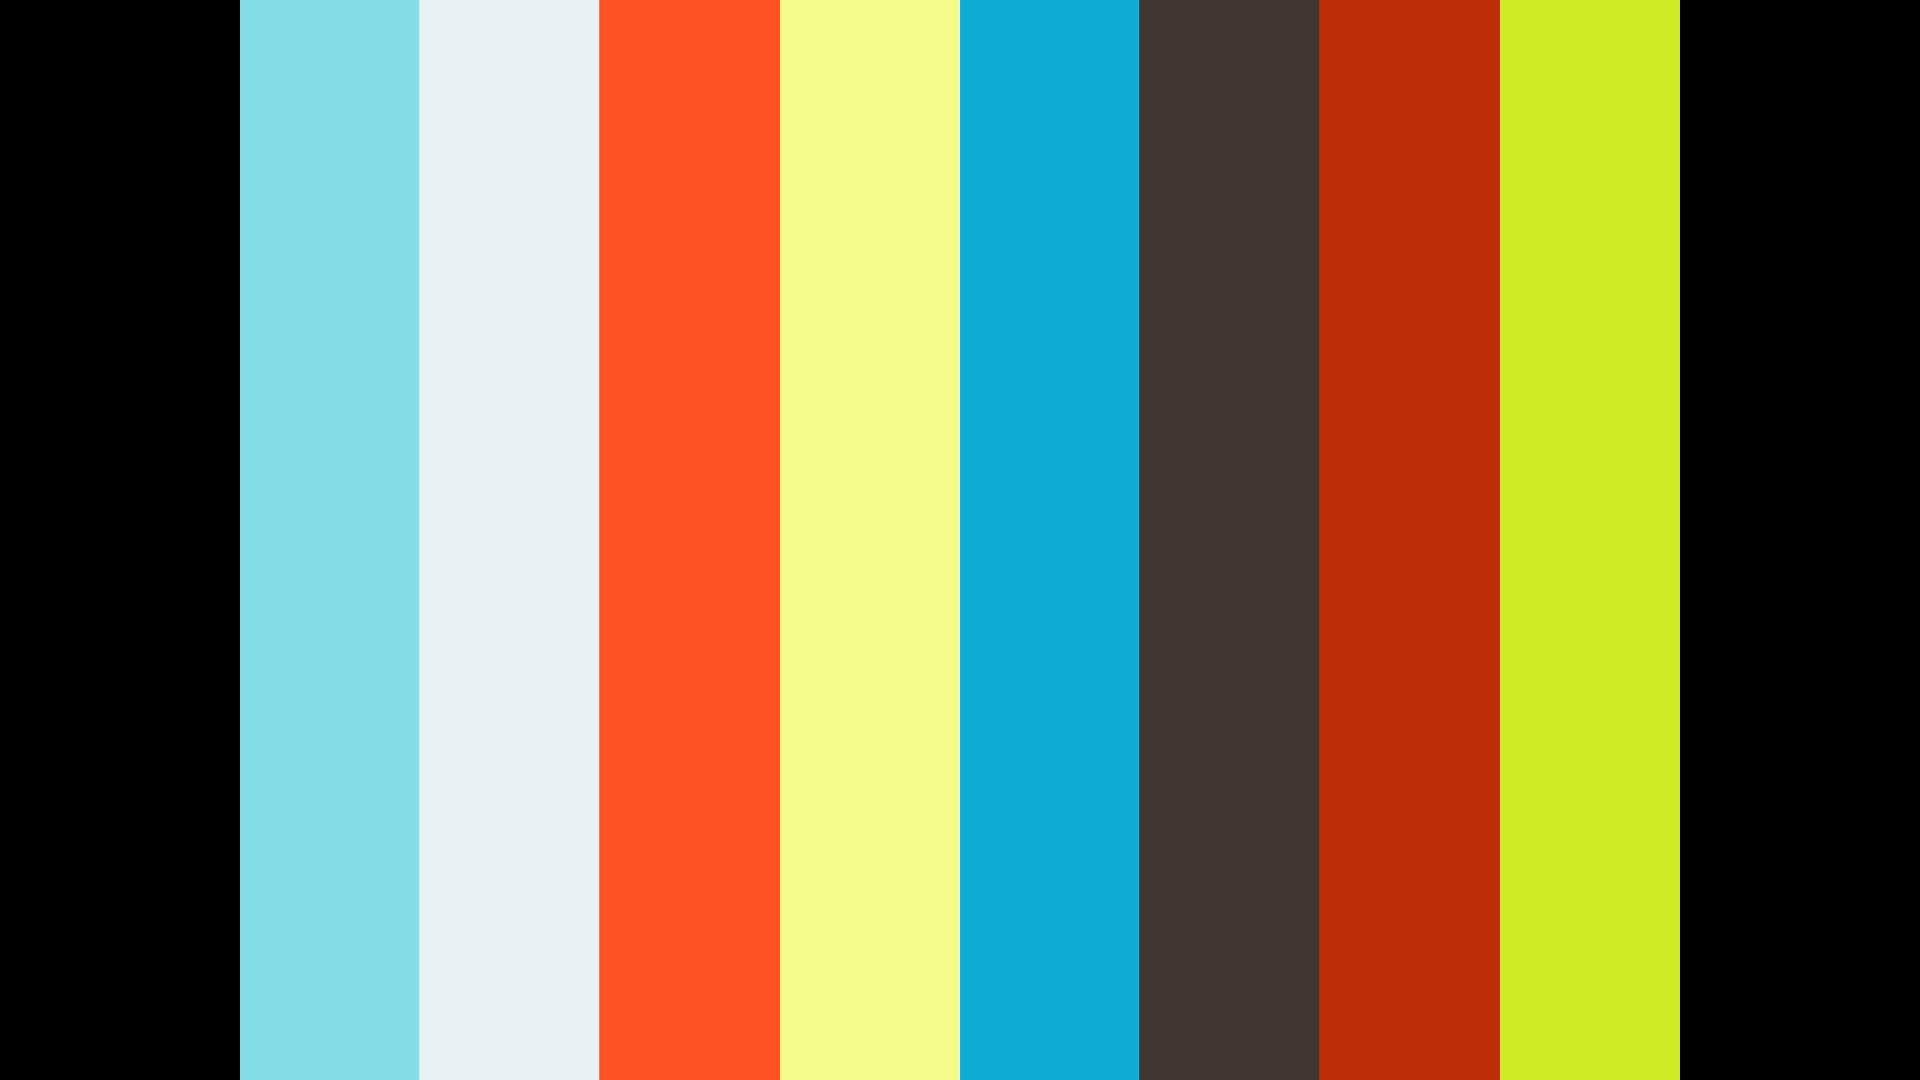 Vídeo corporativo para Qualipharma - Videocontent.es